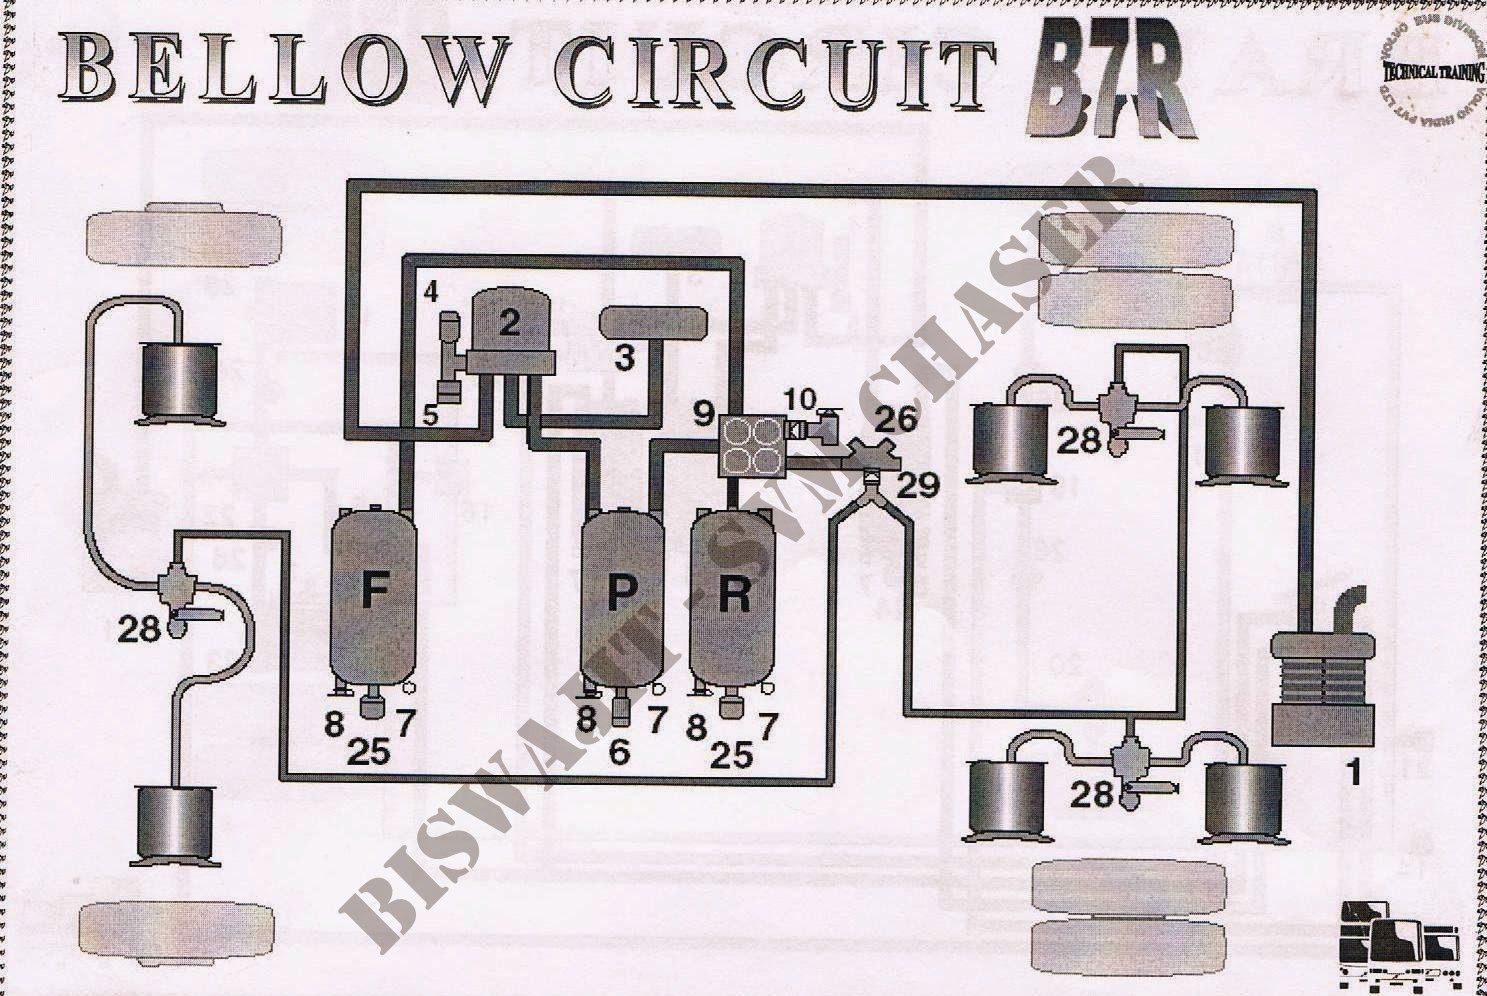 medium resolution of volvo b7r bellow circuit and air suspension biswajit svm chaservolvo b7r bellow circuit diagram